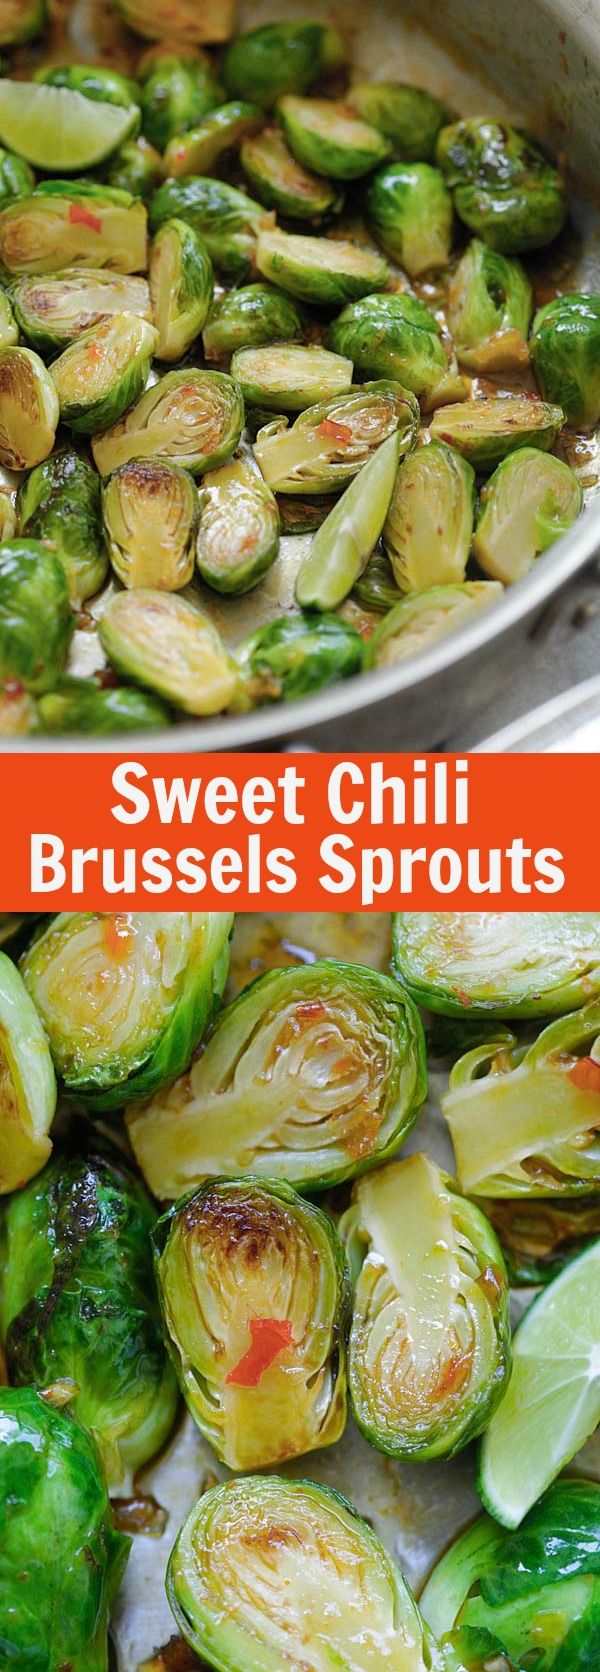 Sweet Chili Brussels Sprouts – easy and delicious sauteed brussels sprouts with Thai sweet chili sauce. Takes 15 mins to make   rasamalaysia.com